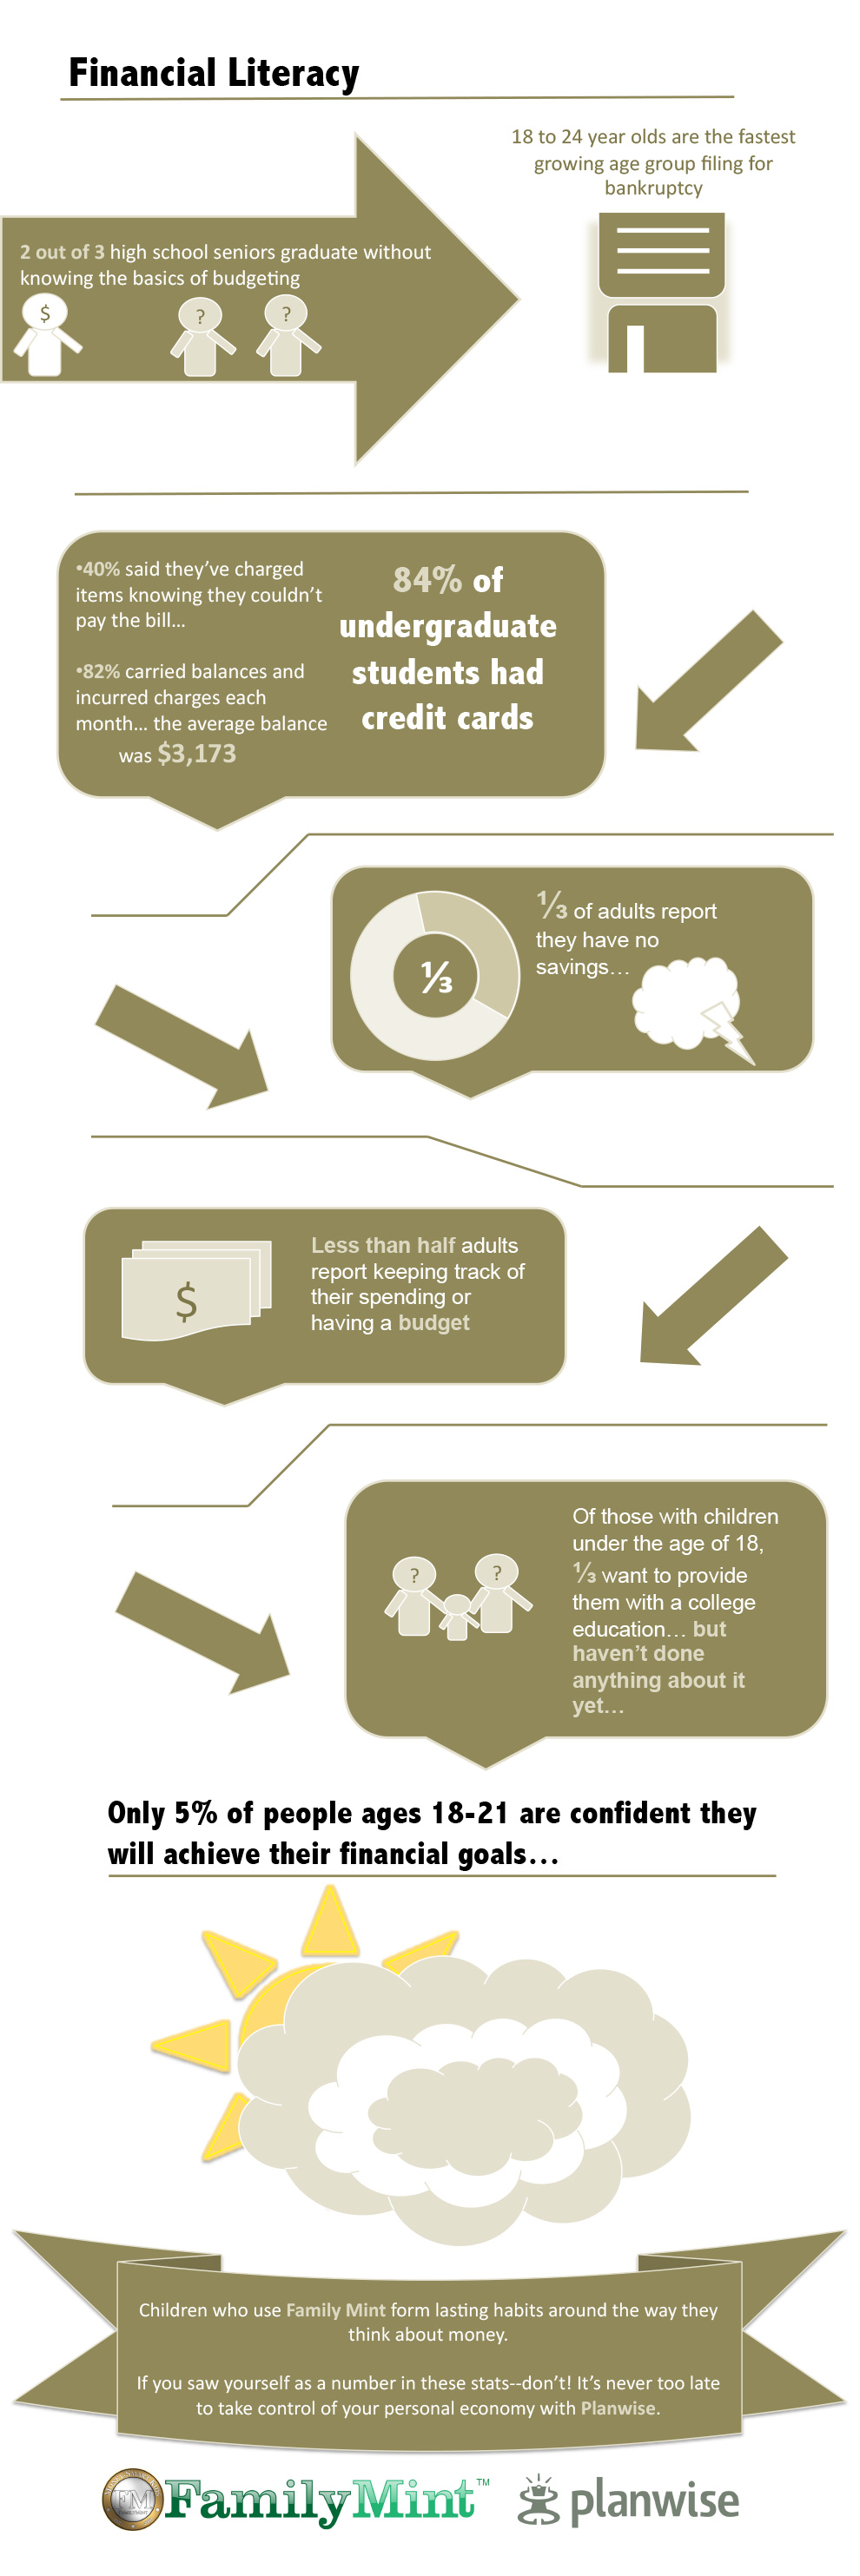 Financial-Literacy-Infographic.jpg